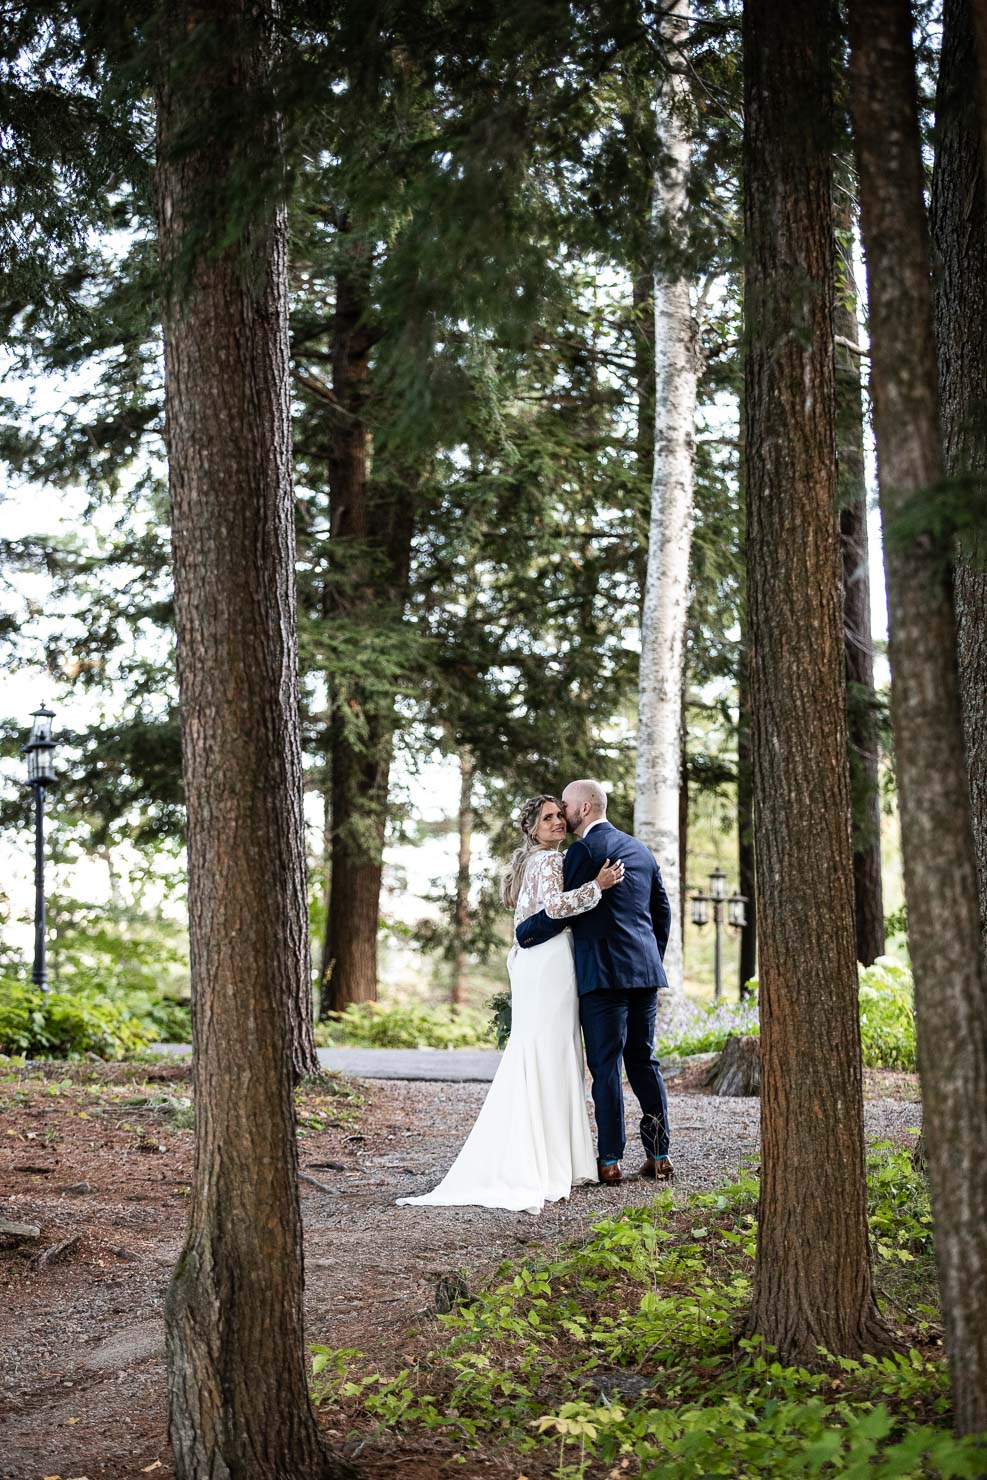 CeremBride and Groom, Wedding, Wedding Photo, akaiserphoto, Sherwood Inn, wedding photographer, sudbury photographer, muskoka wedding, detailsony, Wedding, Wedding Photo, akaiserphoto, Sherwood Inn, wedding photographer, sudbury photographer, muskoka wedding